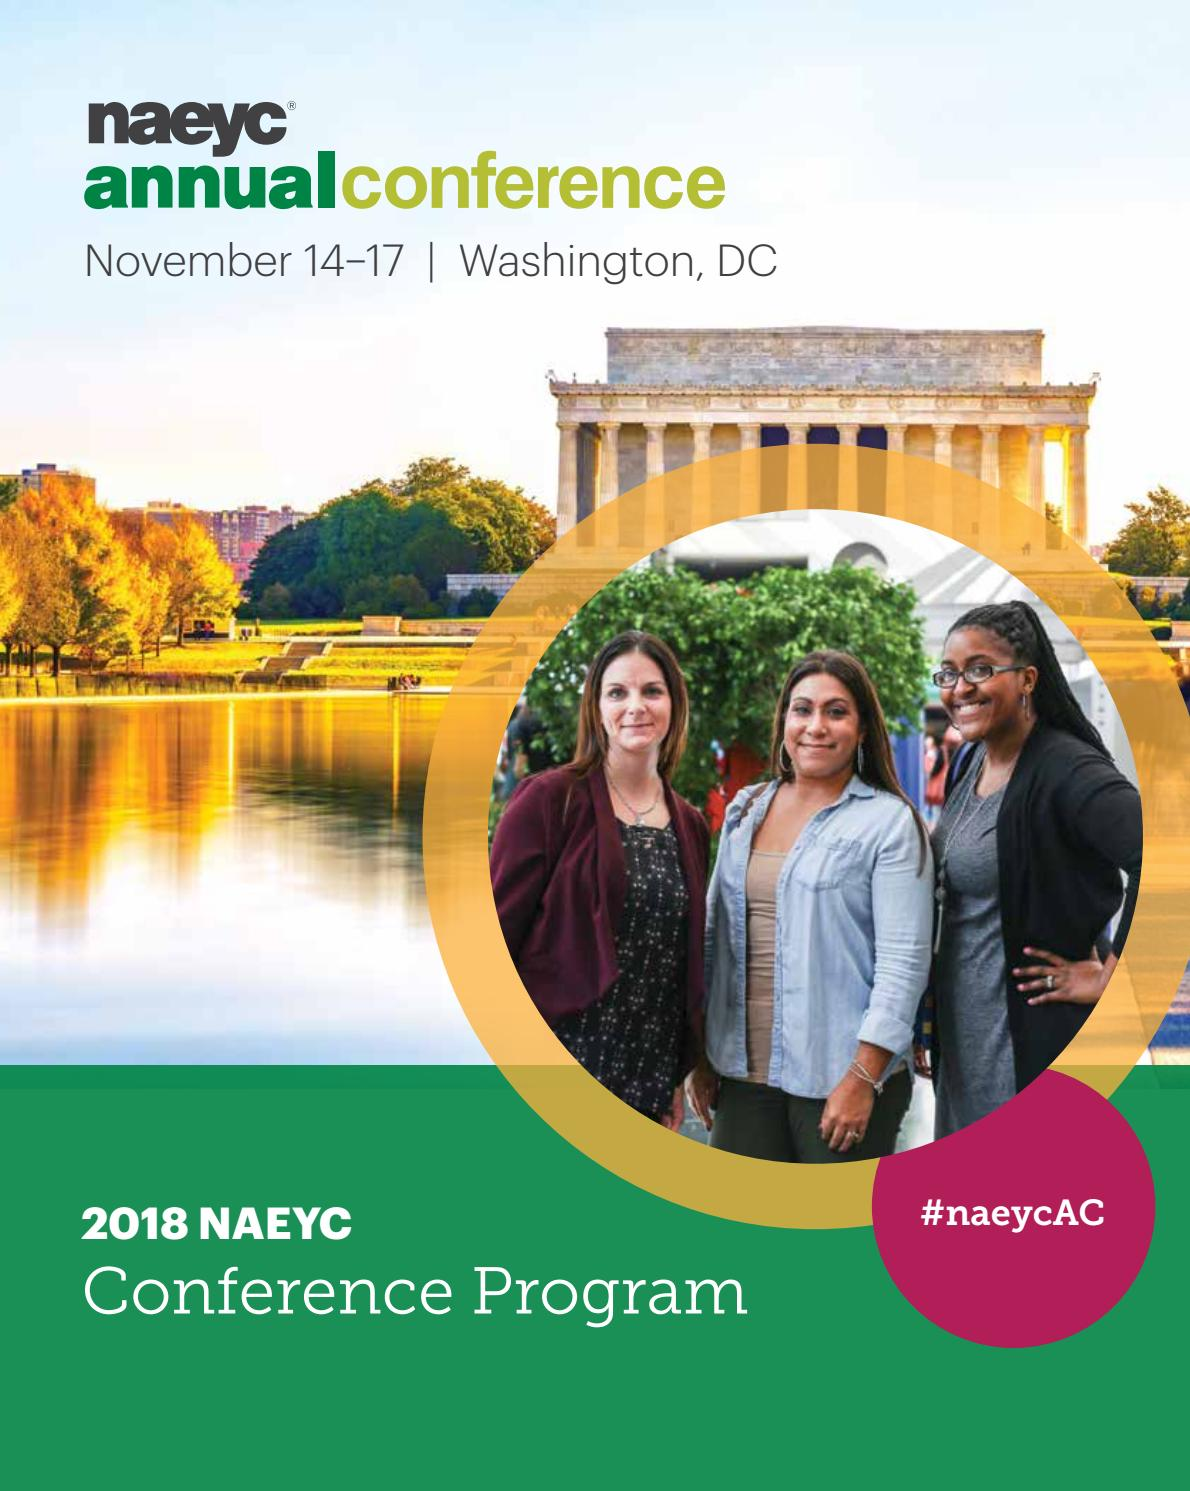 ba46d74a07 NAEYC 2018 Annual Conference Program by NAEYC - issuu